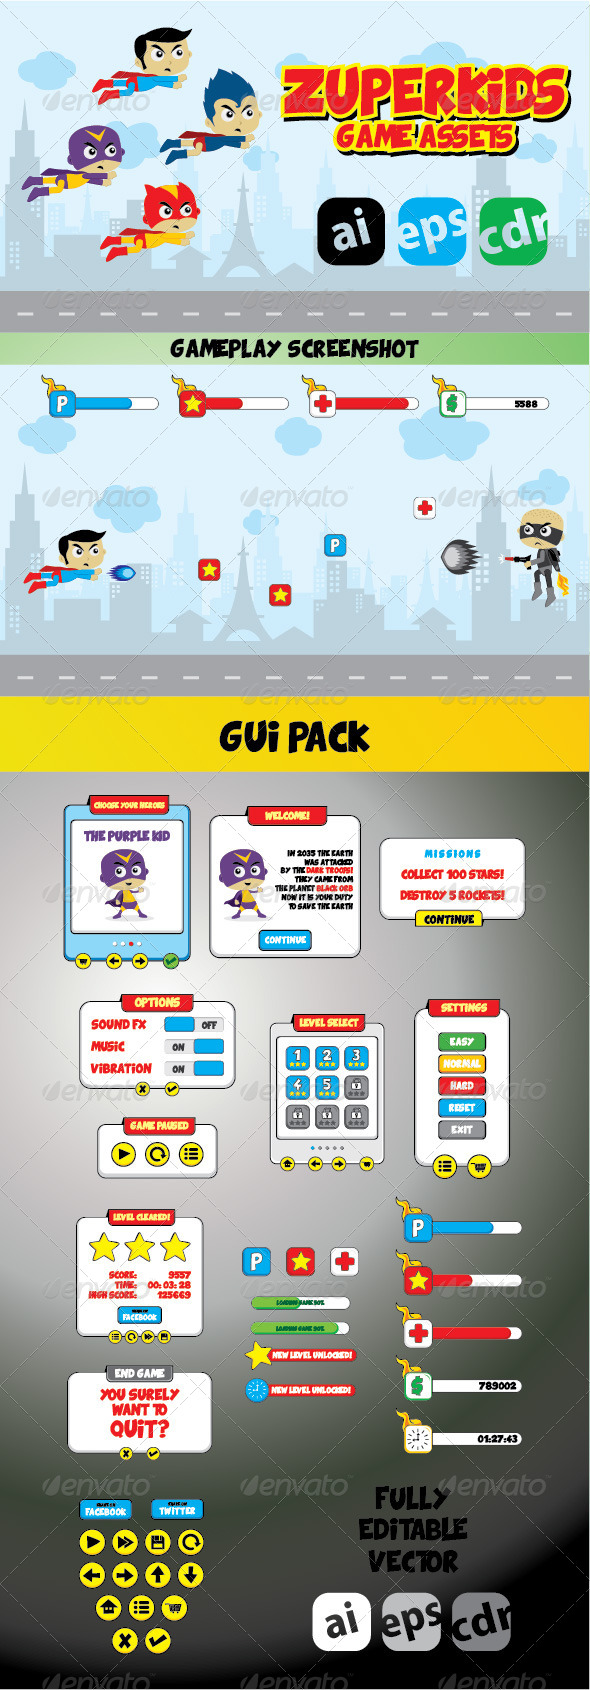 GraphicRiver Zuperkids Game Assets & GUI Pack 7441659